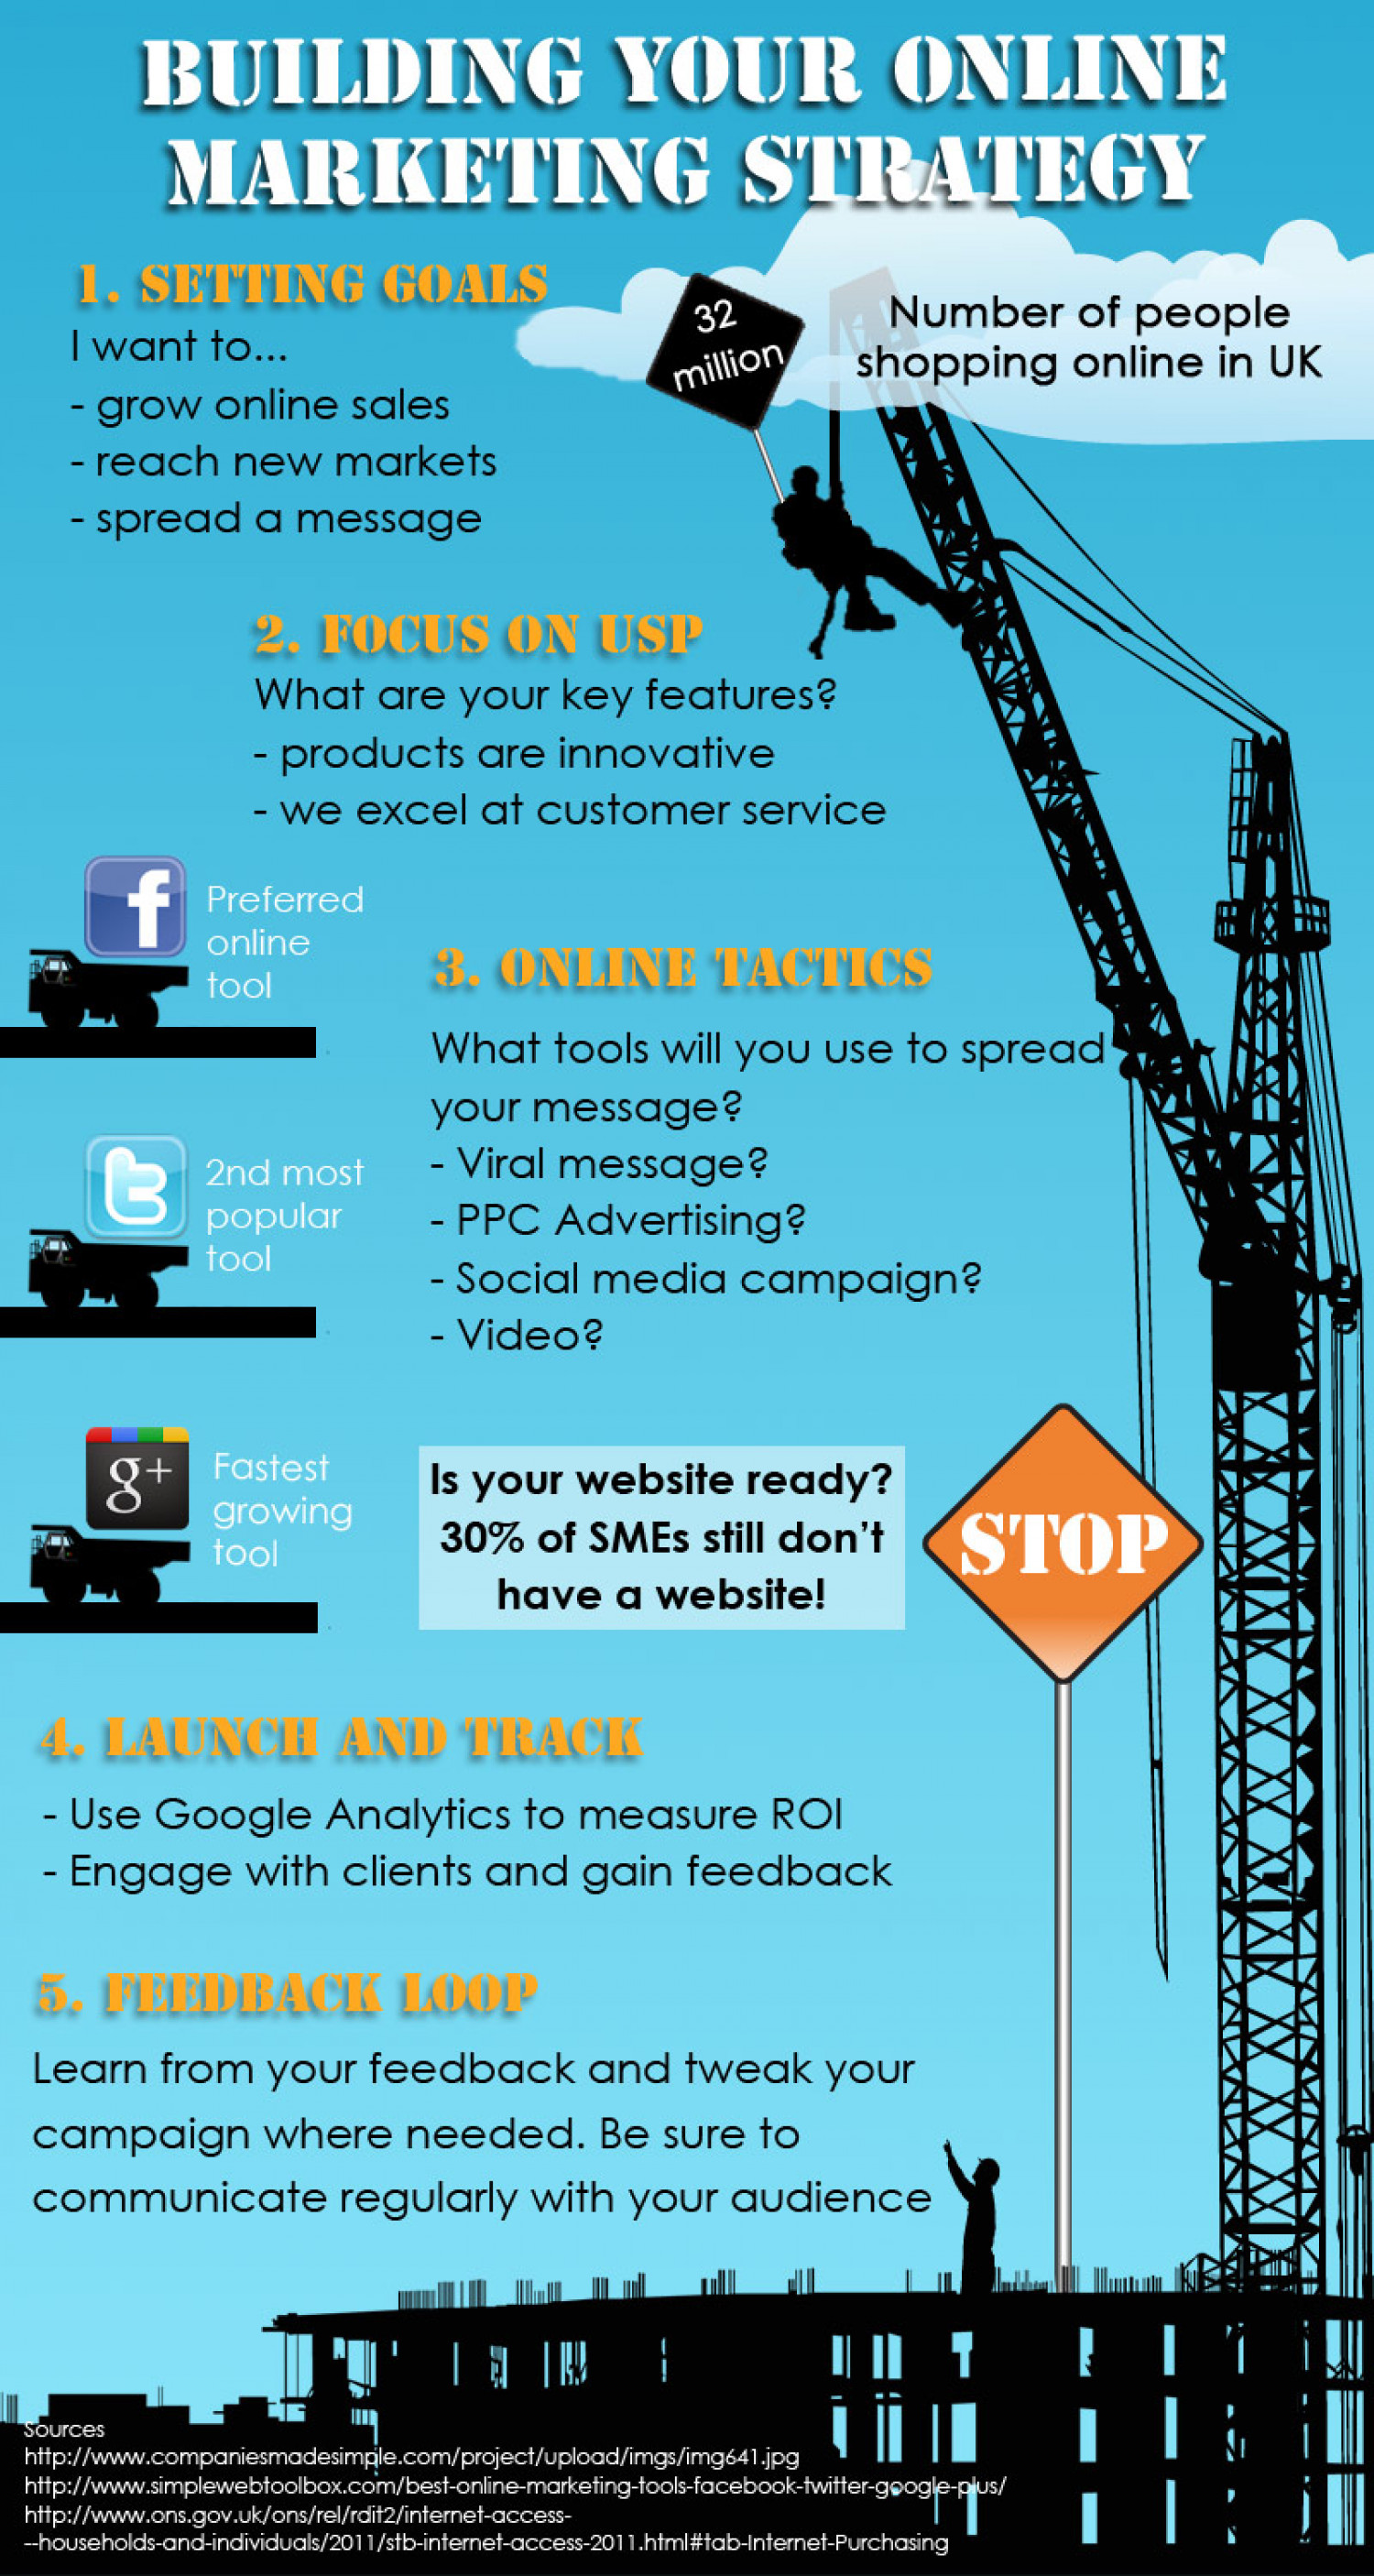 Building Your Online Marketing Strategy Infographic